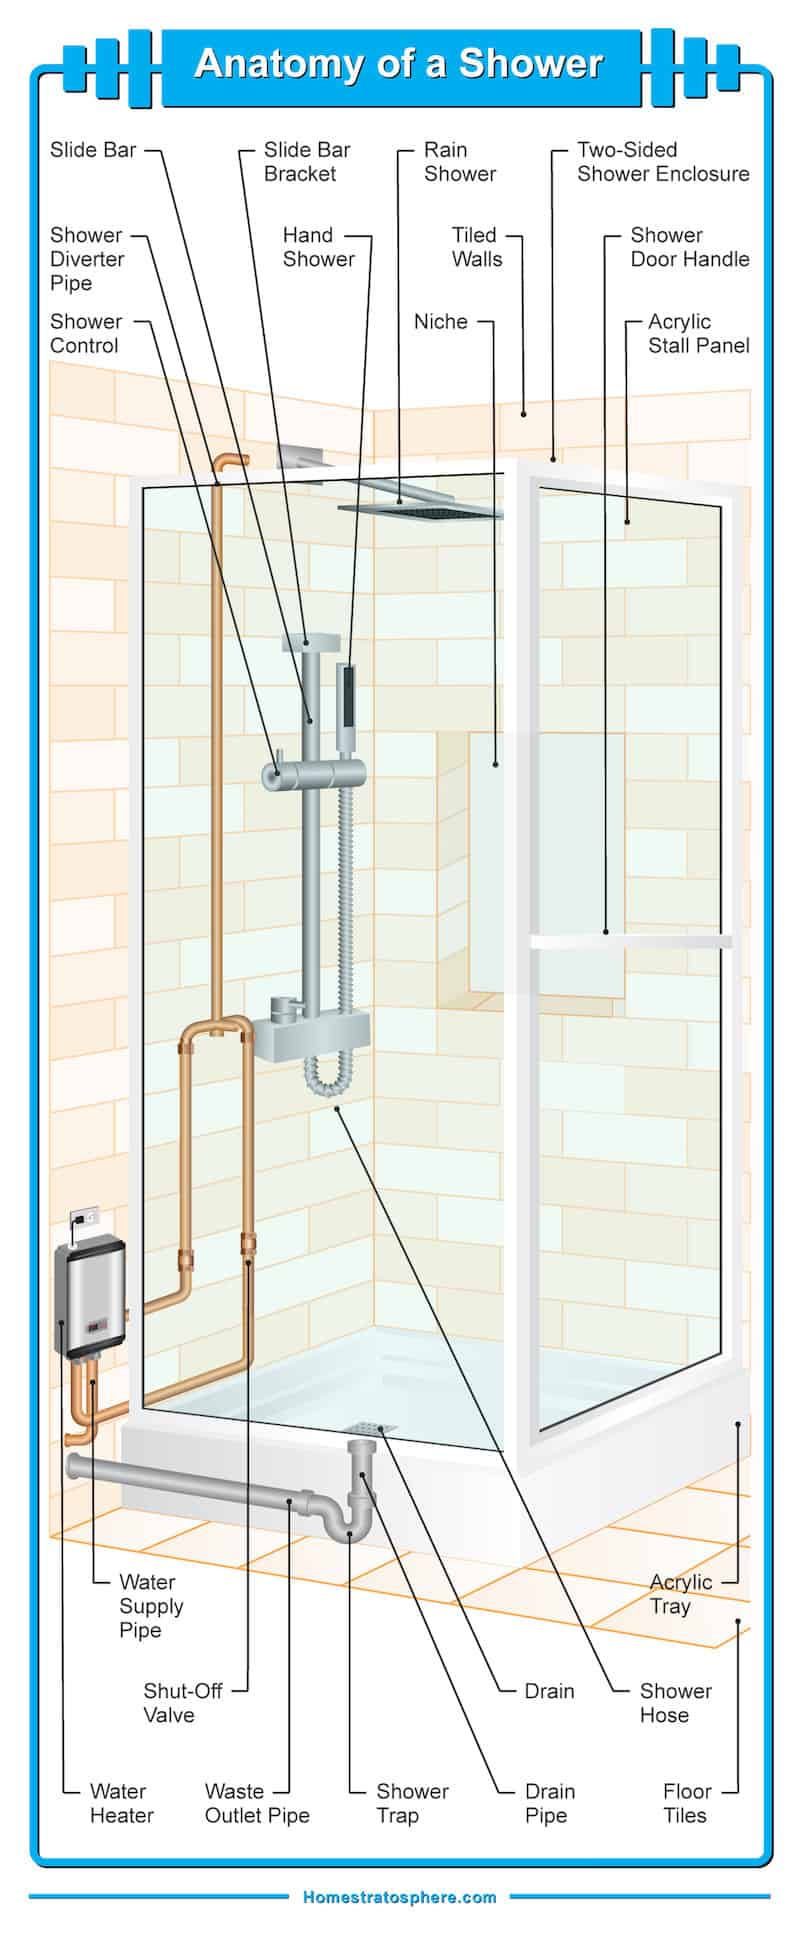 Cross section diagram of a bathroom shower